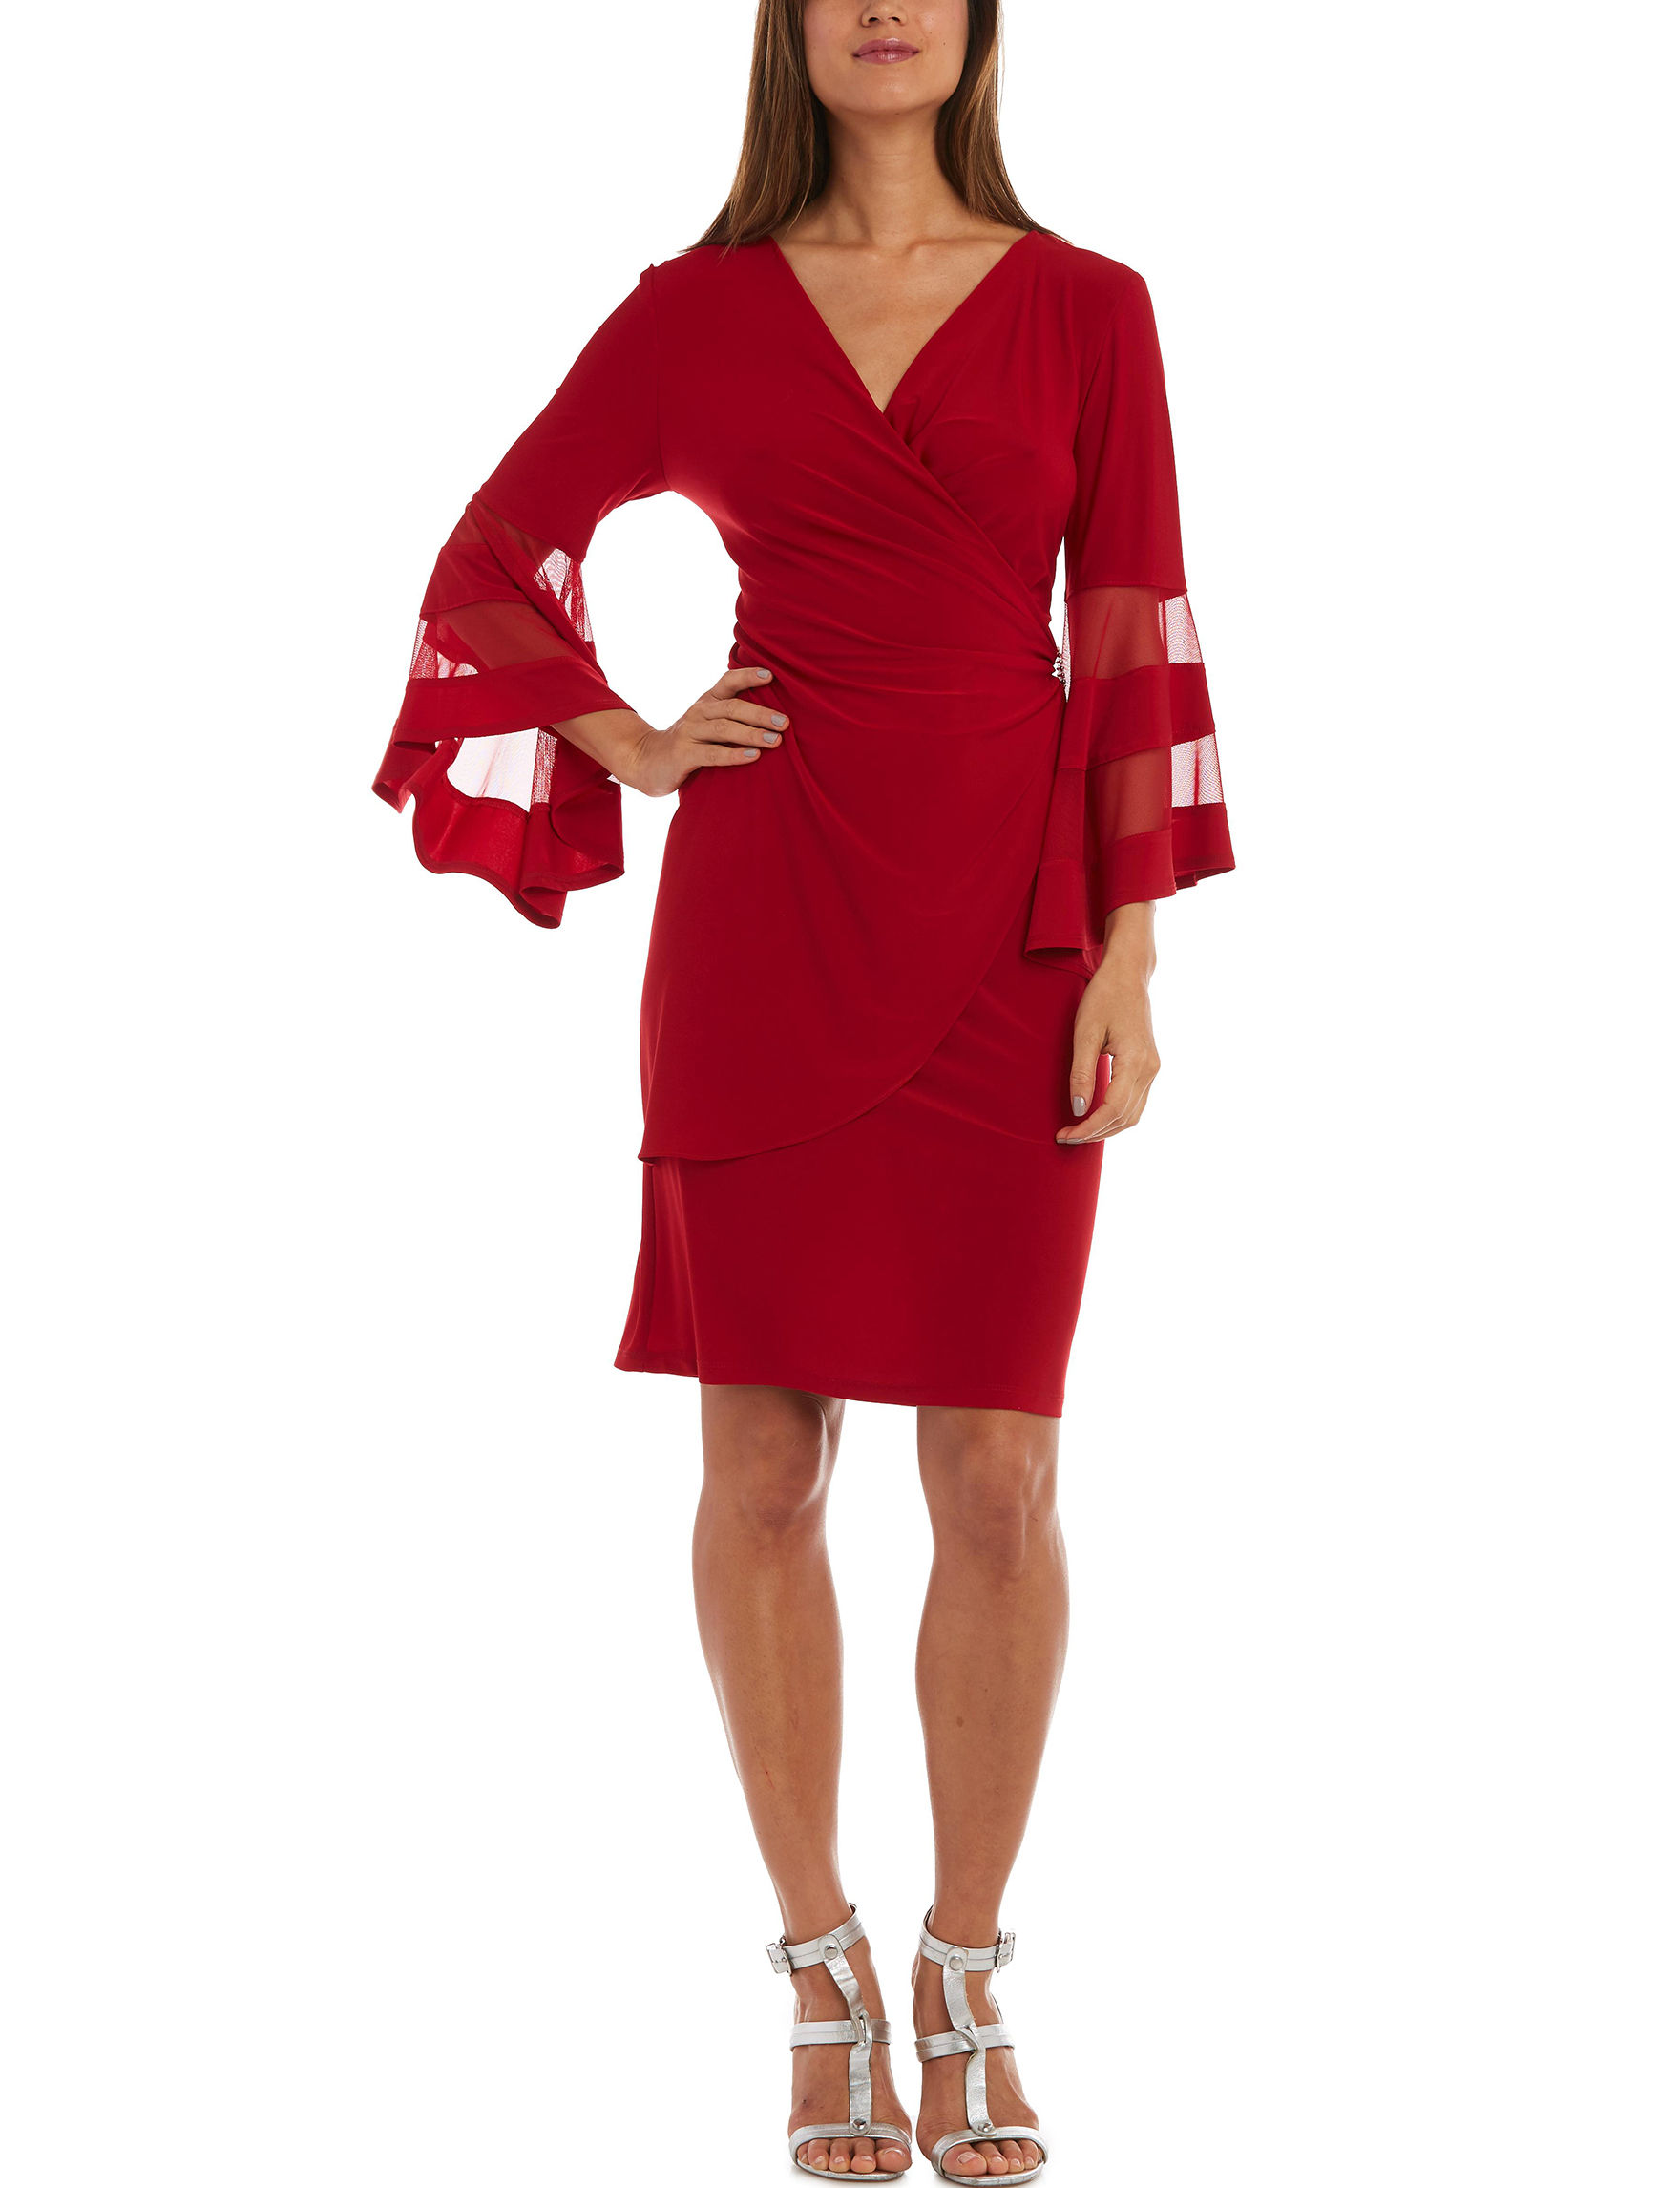 R & M Richards Red Cocktail & Party Evening & Formal A-line Dresses